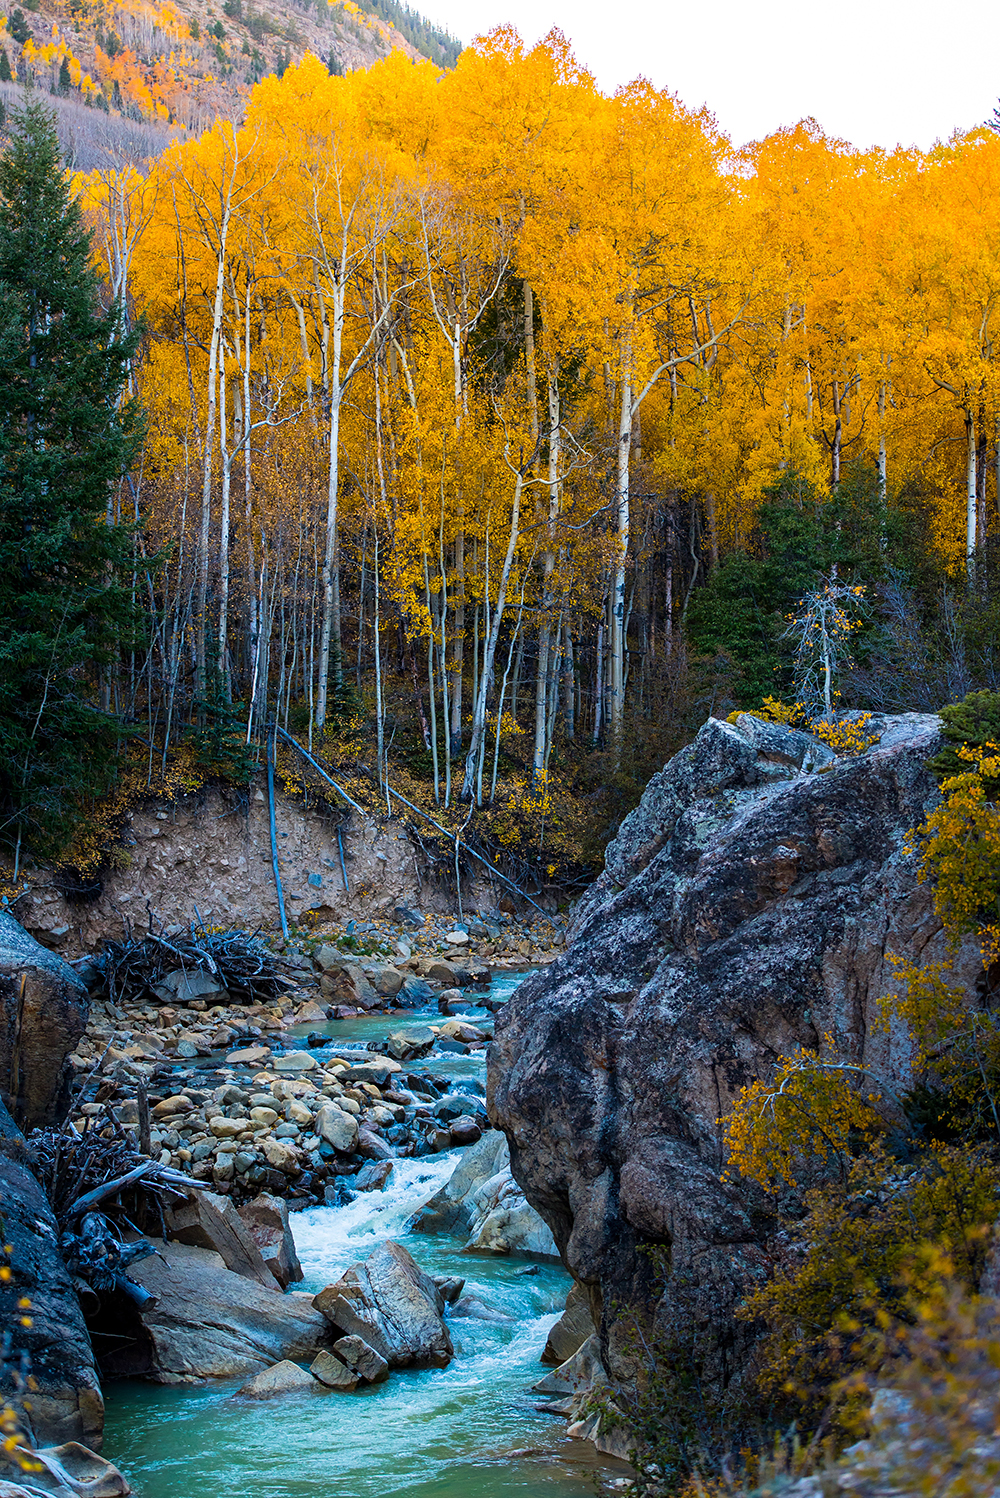 A stream surrounded by rocks and trees with orange leaves | Motif